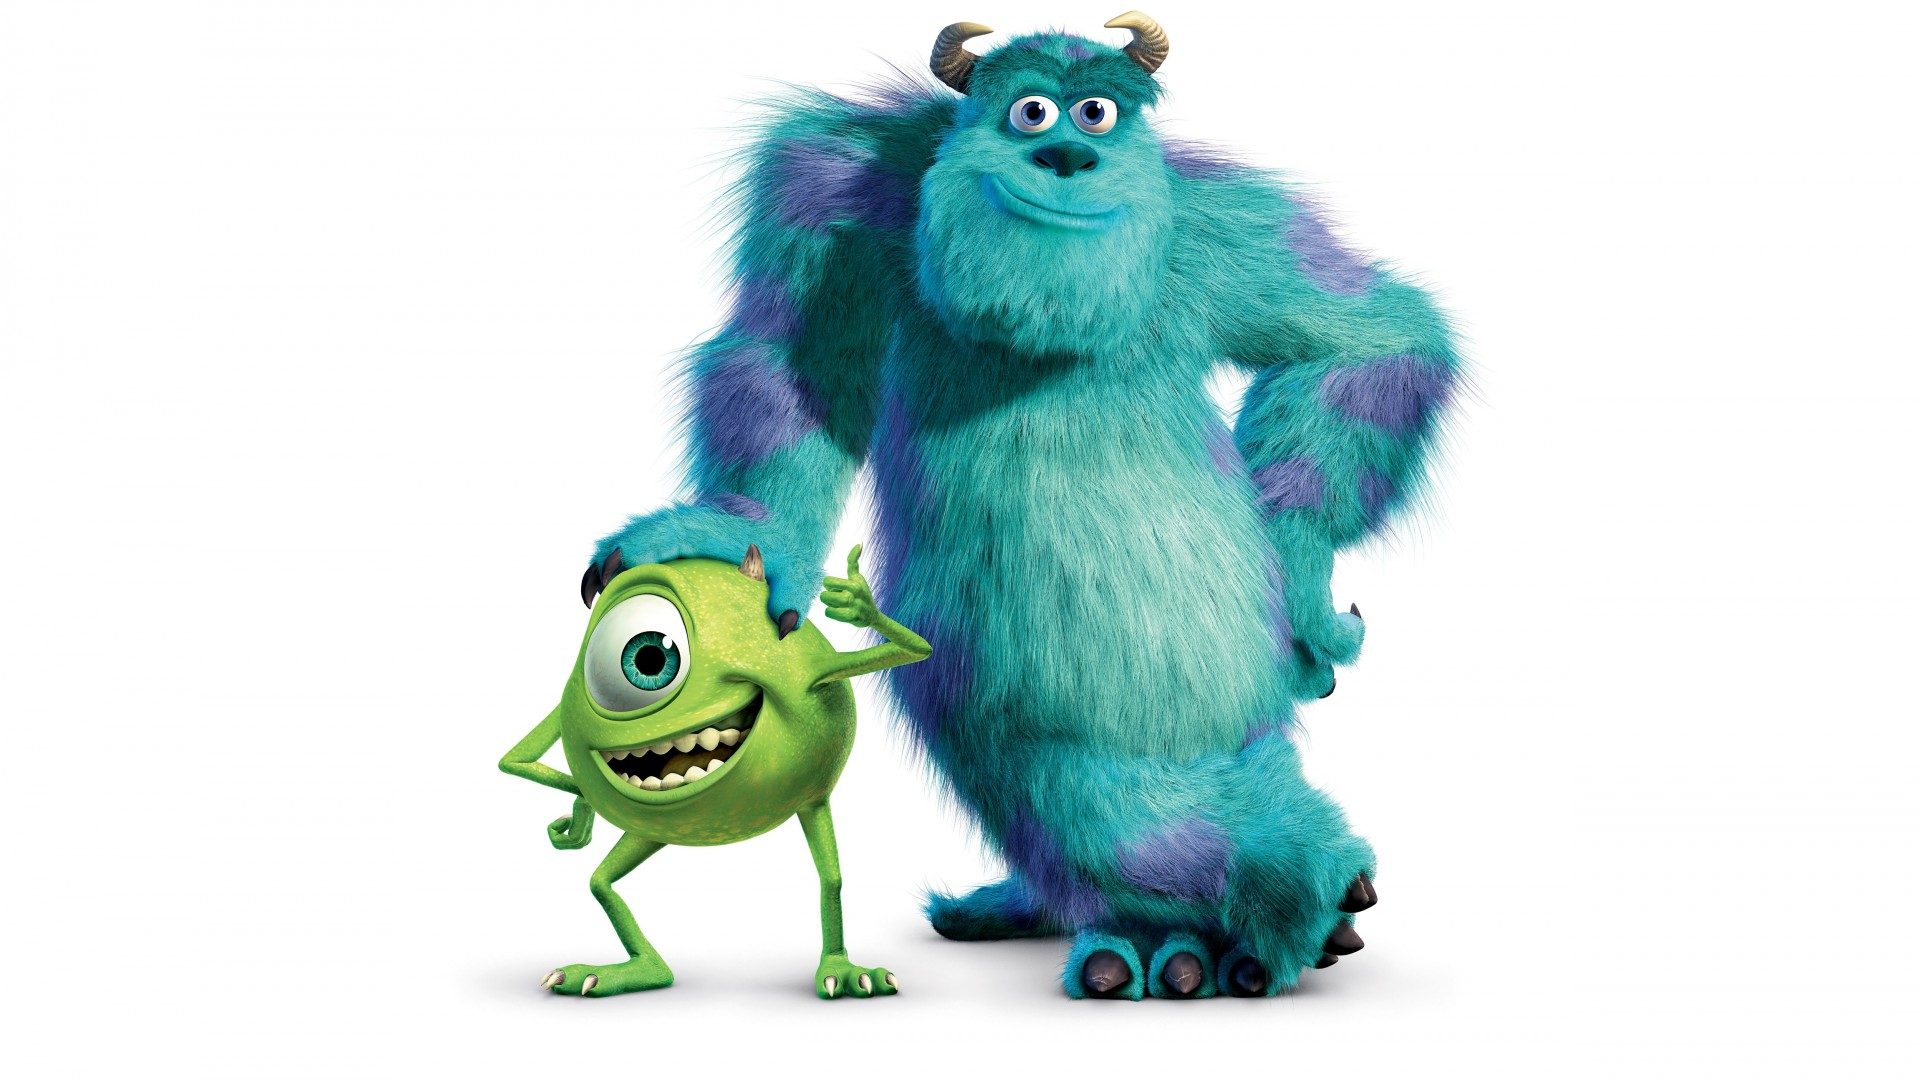 Monsters inc characters pictures